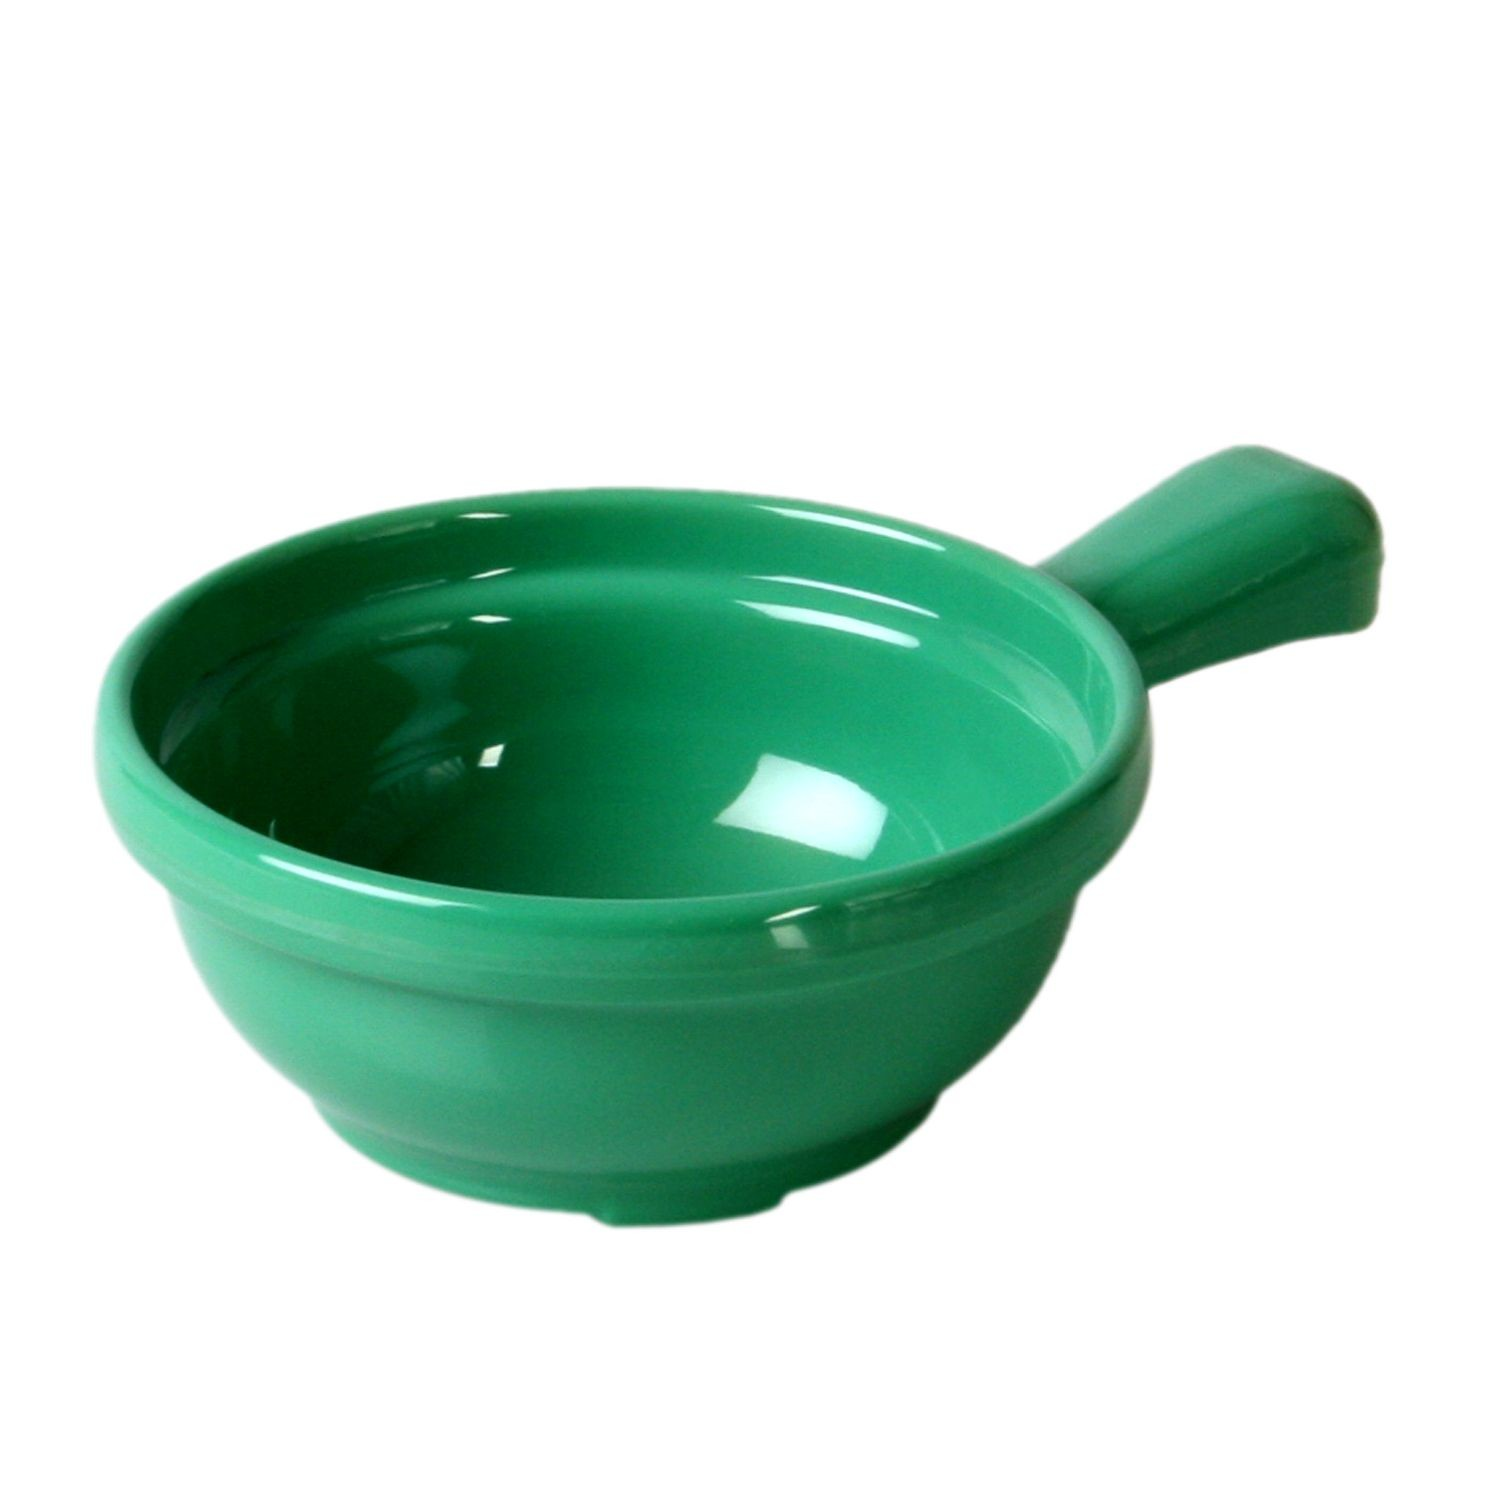 Thunder Group CR305GR Green Melamine Soup Bowl with Handle 10 oz. - 1 doz